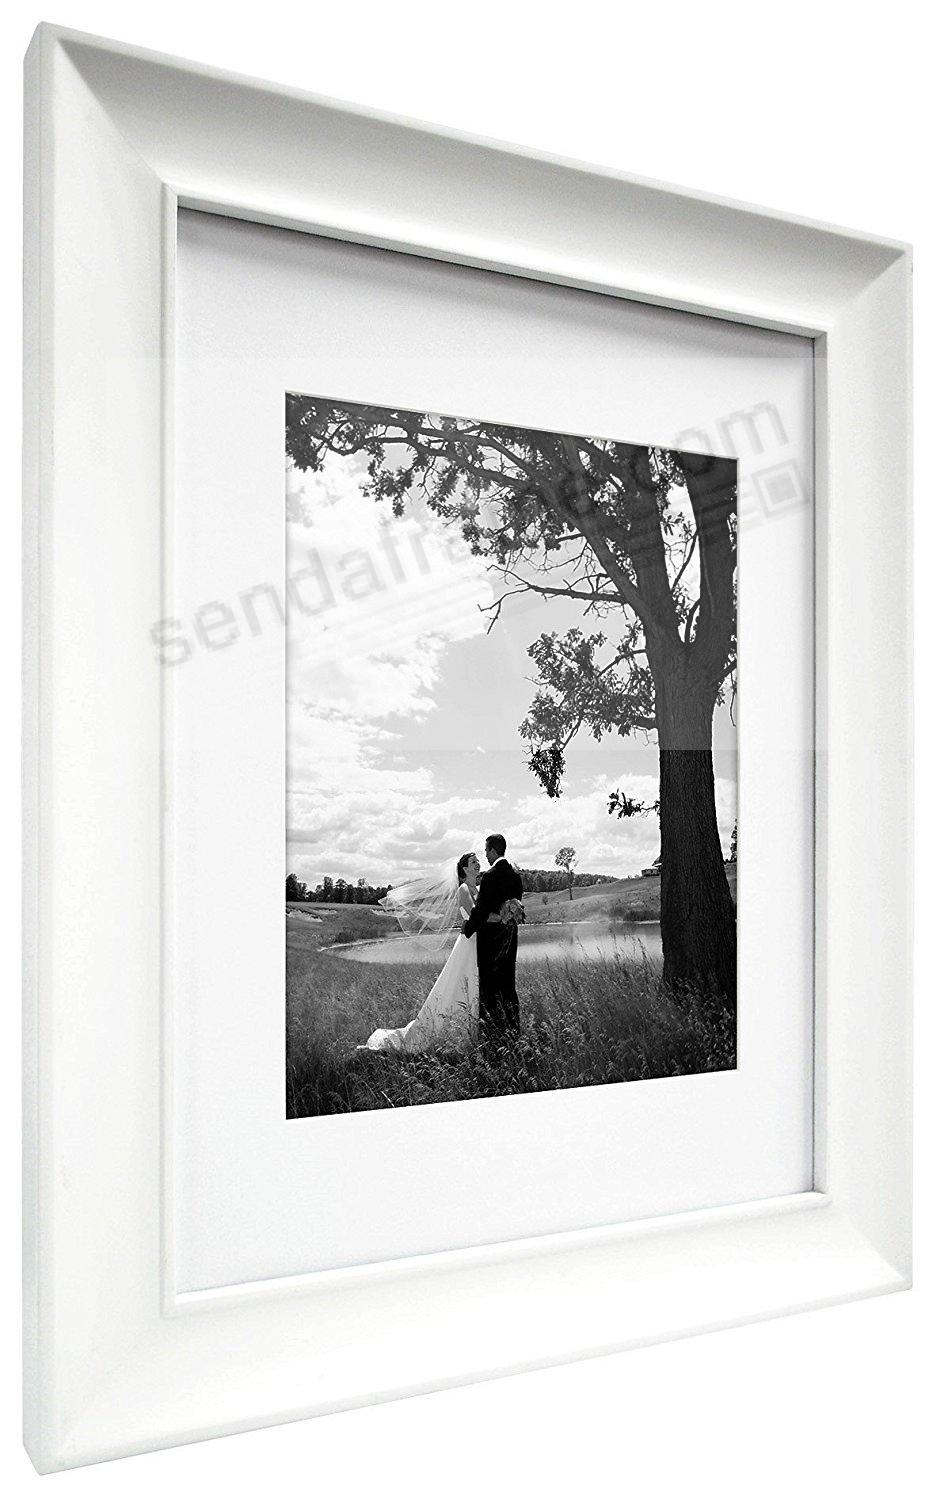 White ARCHIVAL Matted Wood frame 8x10/5x7 by MCS® - Picture Frames ...